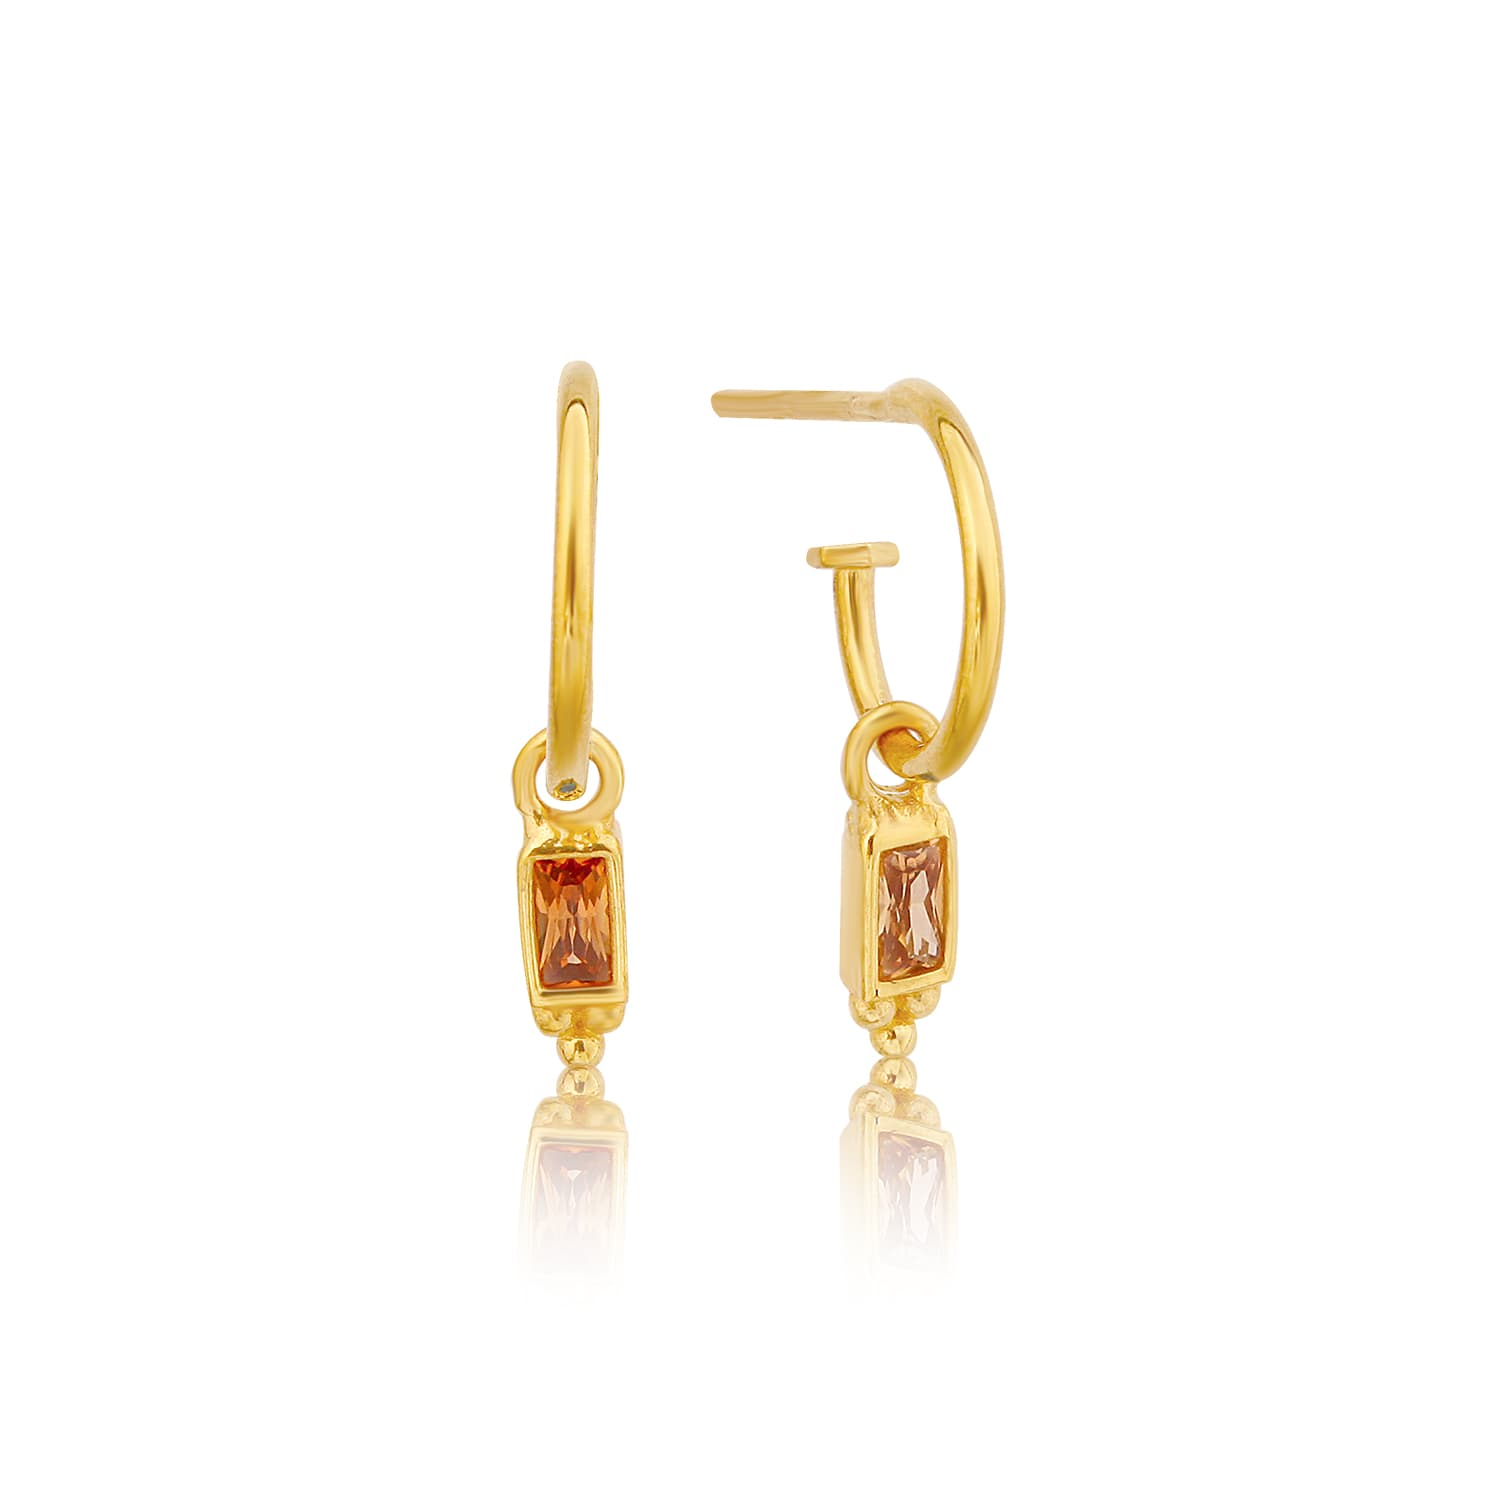 SUGAR SOLO CITRINE - GOLD-PLATED EARRINGS